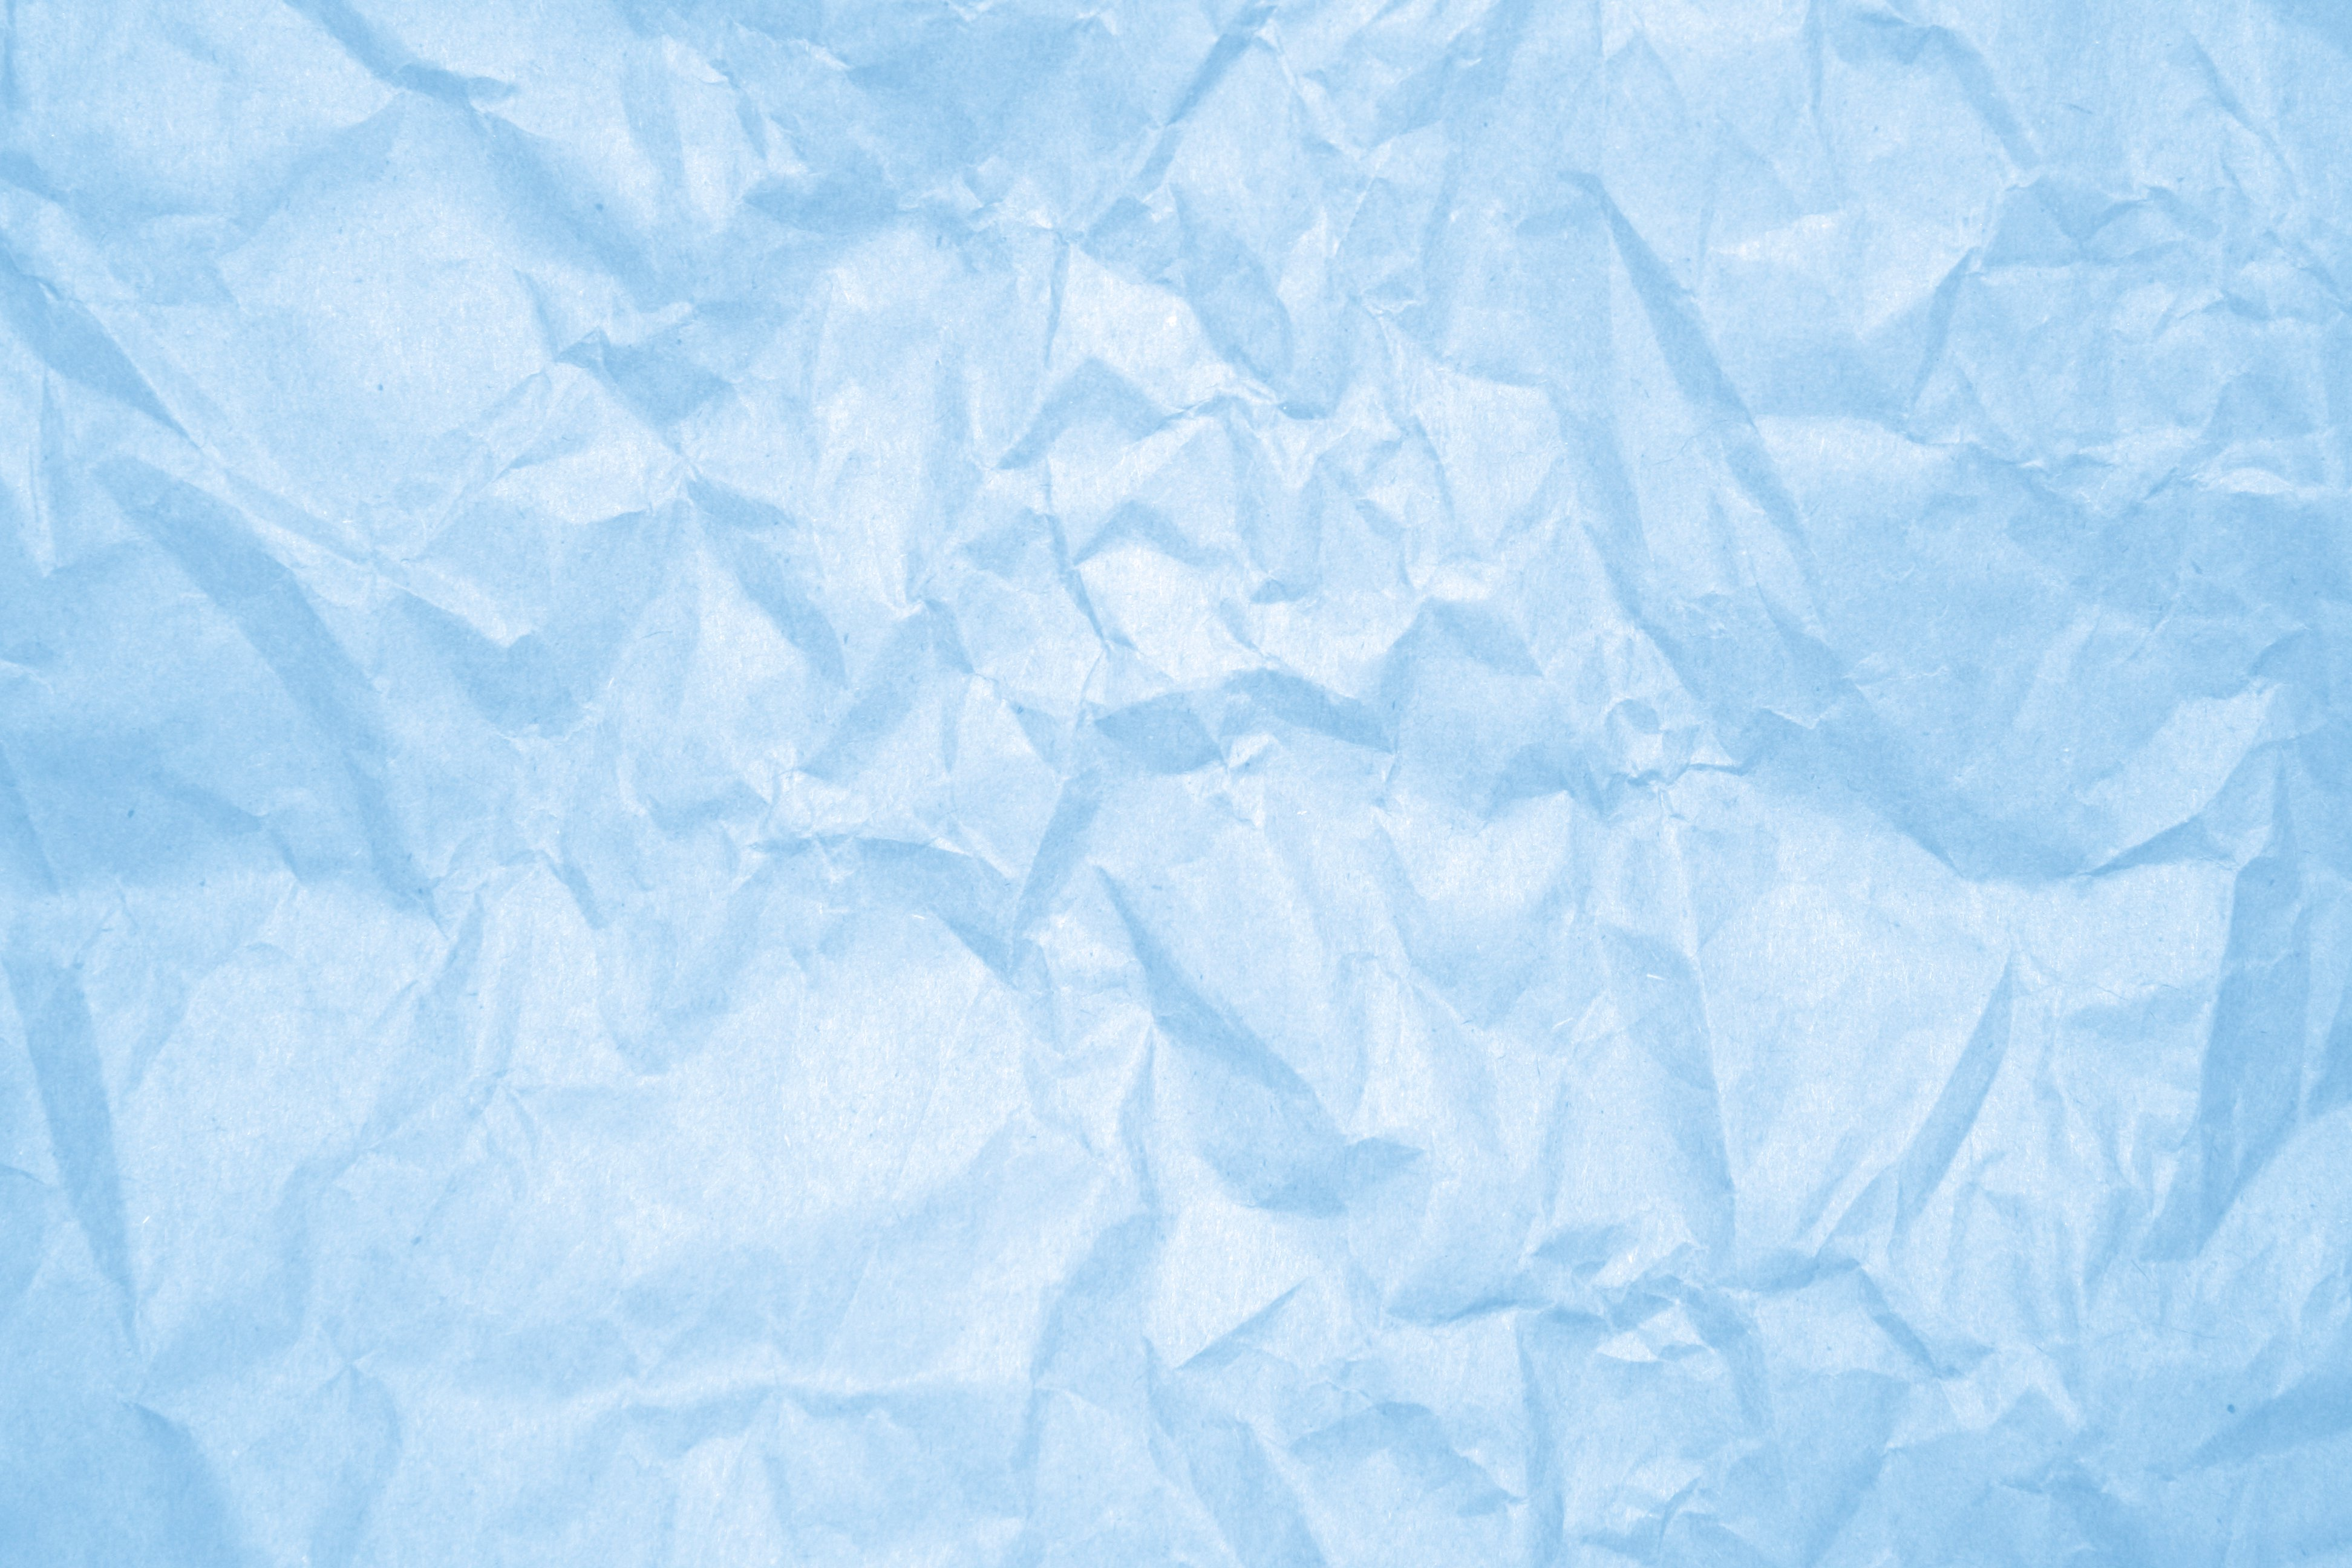 Crumpled Baby Blue Paper Texture Picture   Free Photograph   Photos